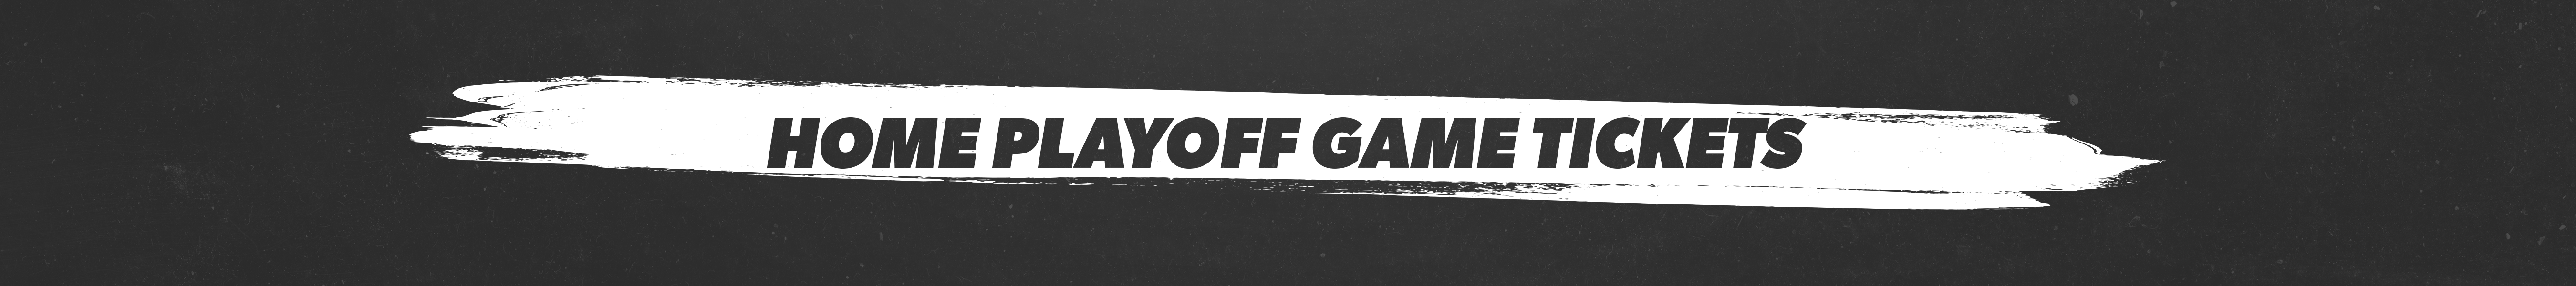 playoffgametickets